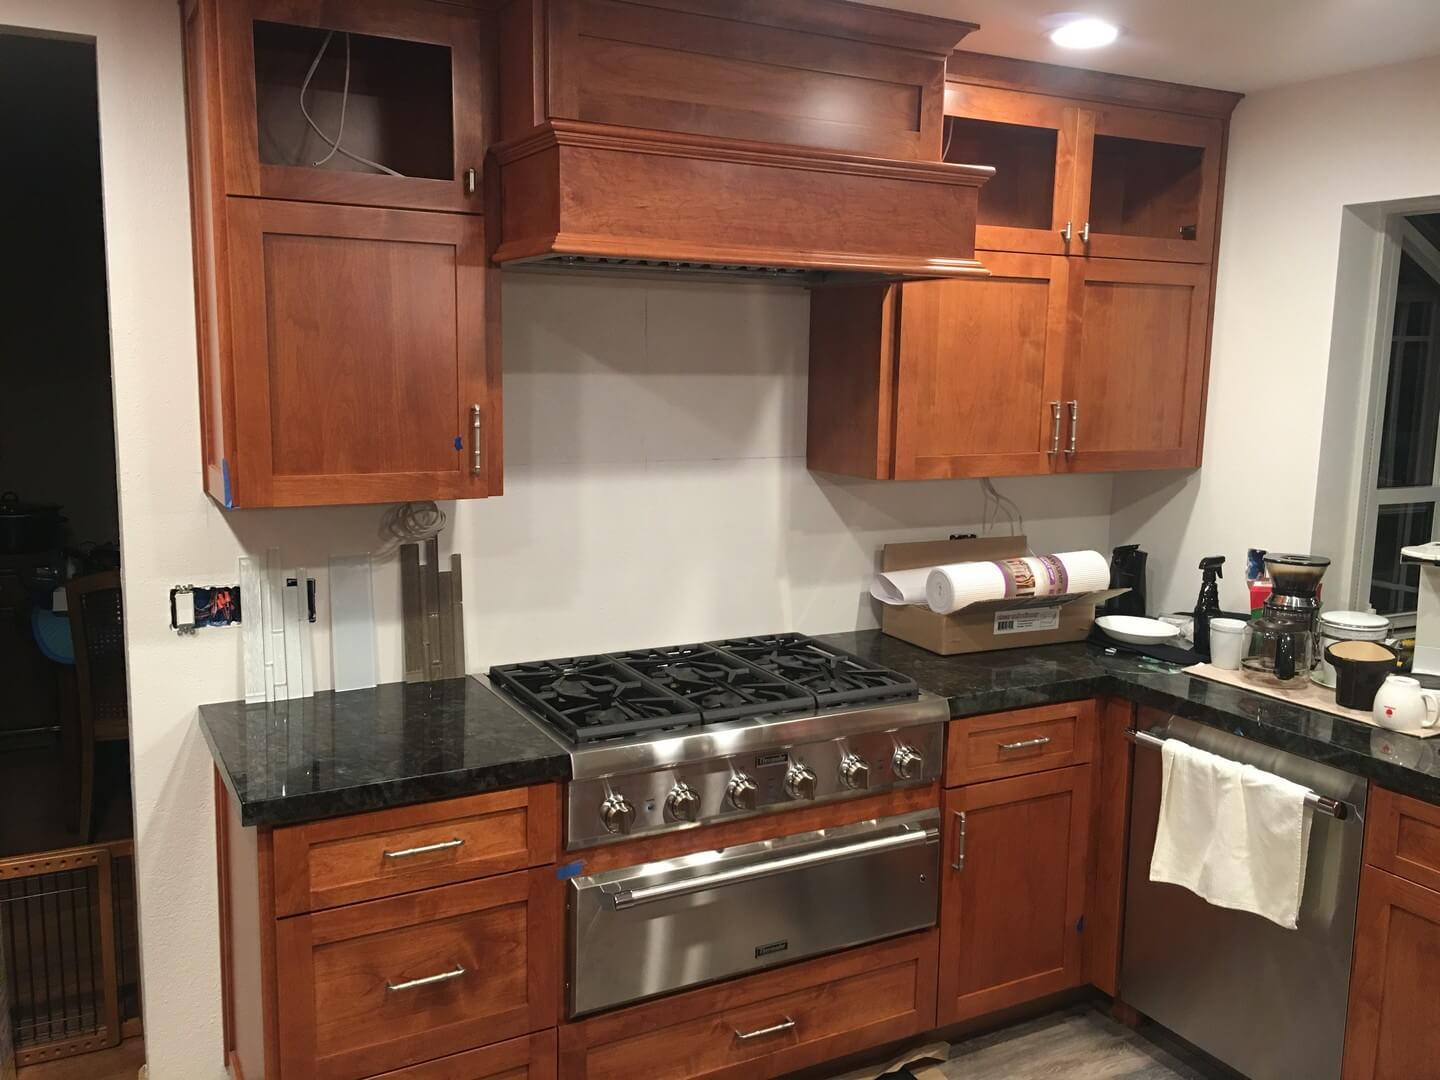 kitchen remodeling in progress with large gas stove